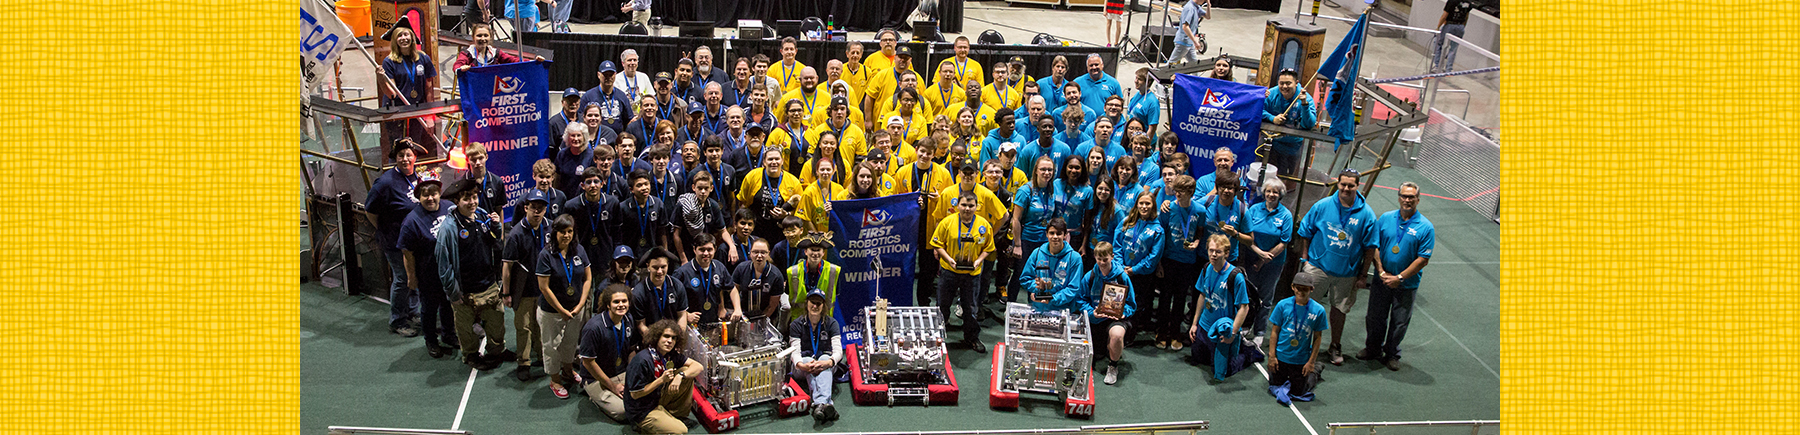 2017 Smoky Mountains Winning Alliance-SLIDER